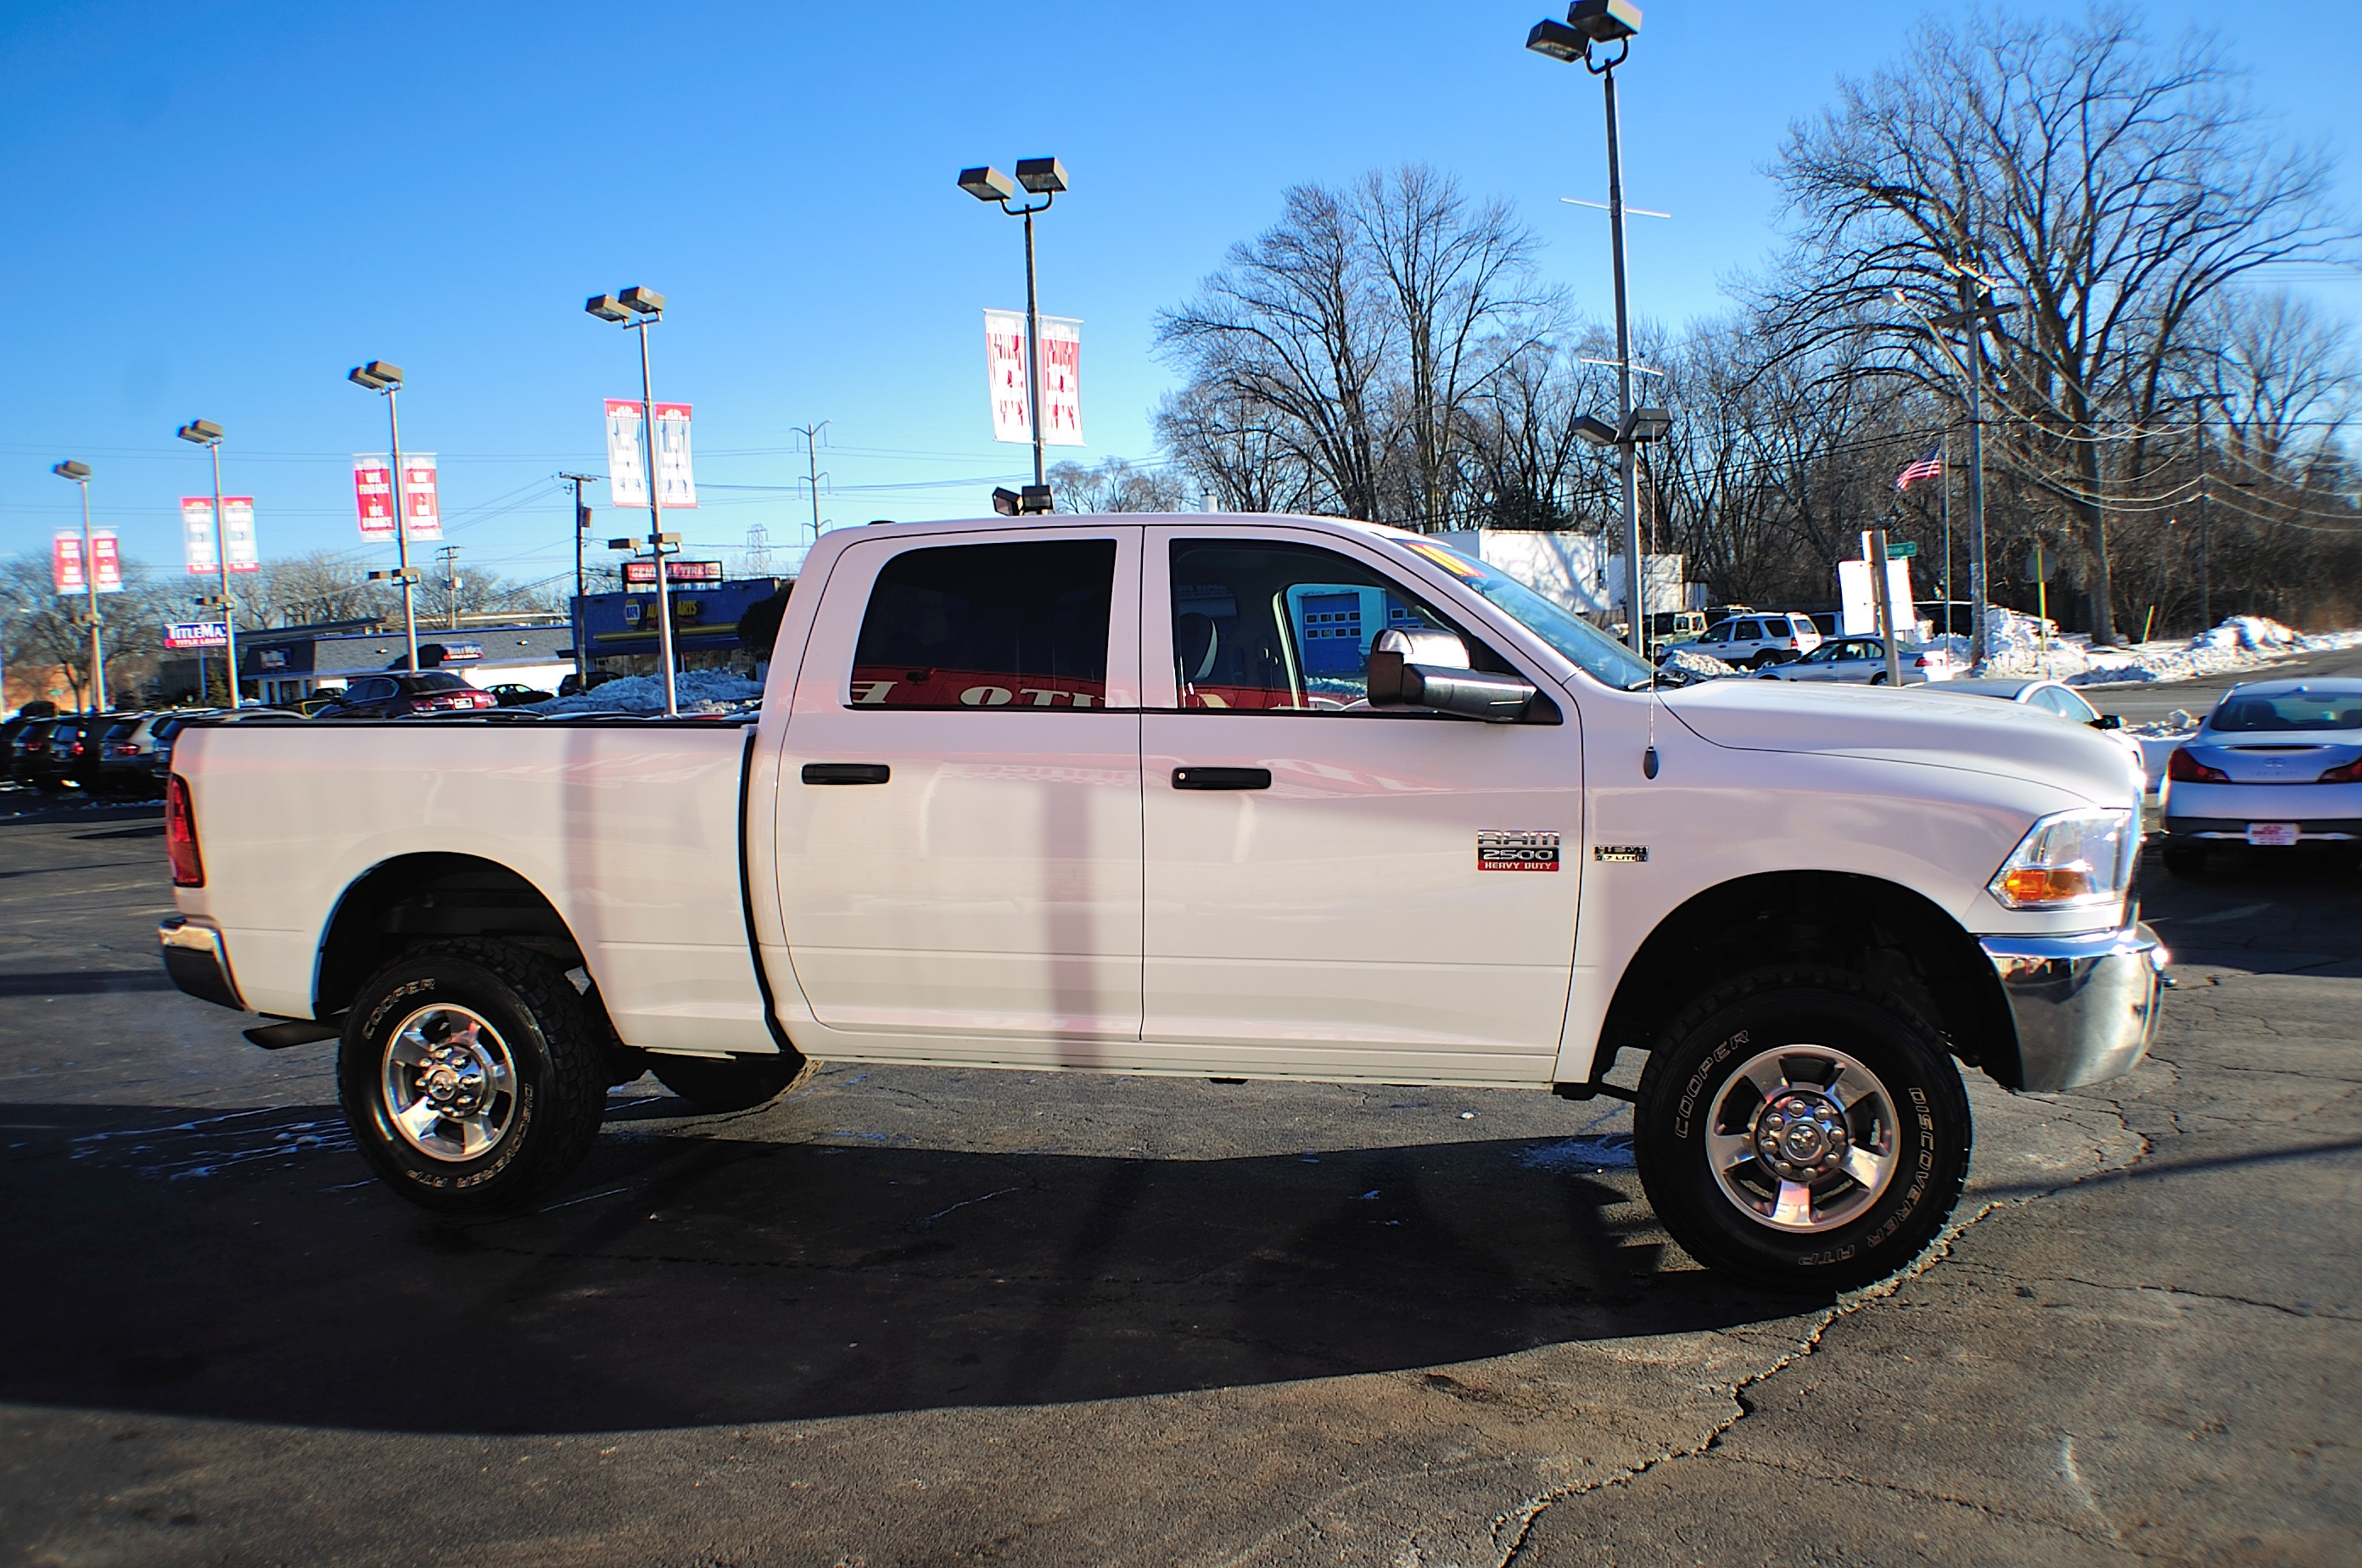 2010 Dodge Ram 2500 HD White Used 4x4 Truck Sale Bannockburn Barrington Beach Park